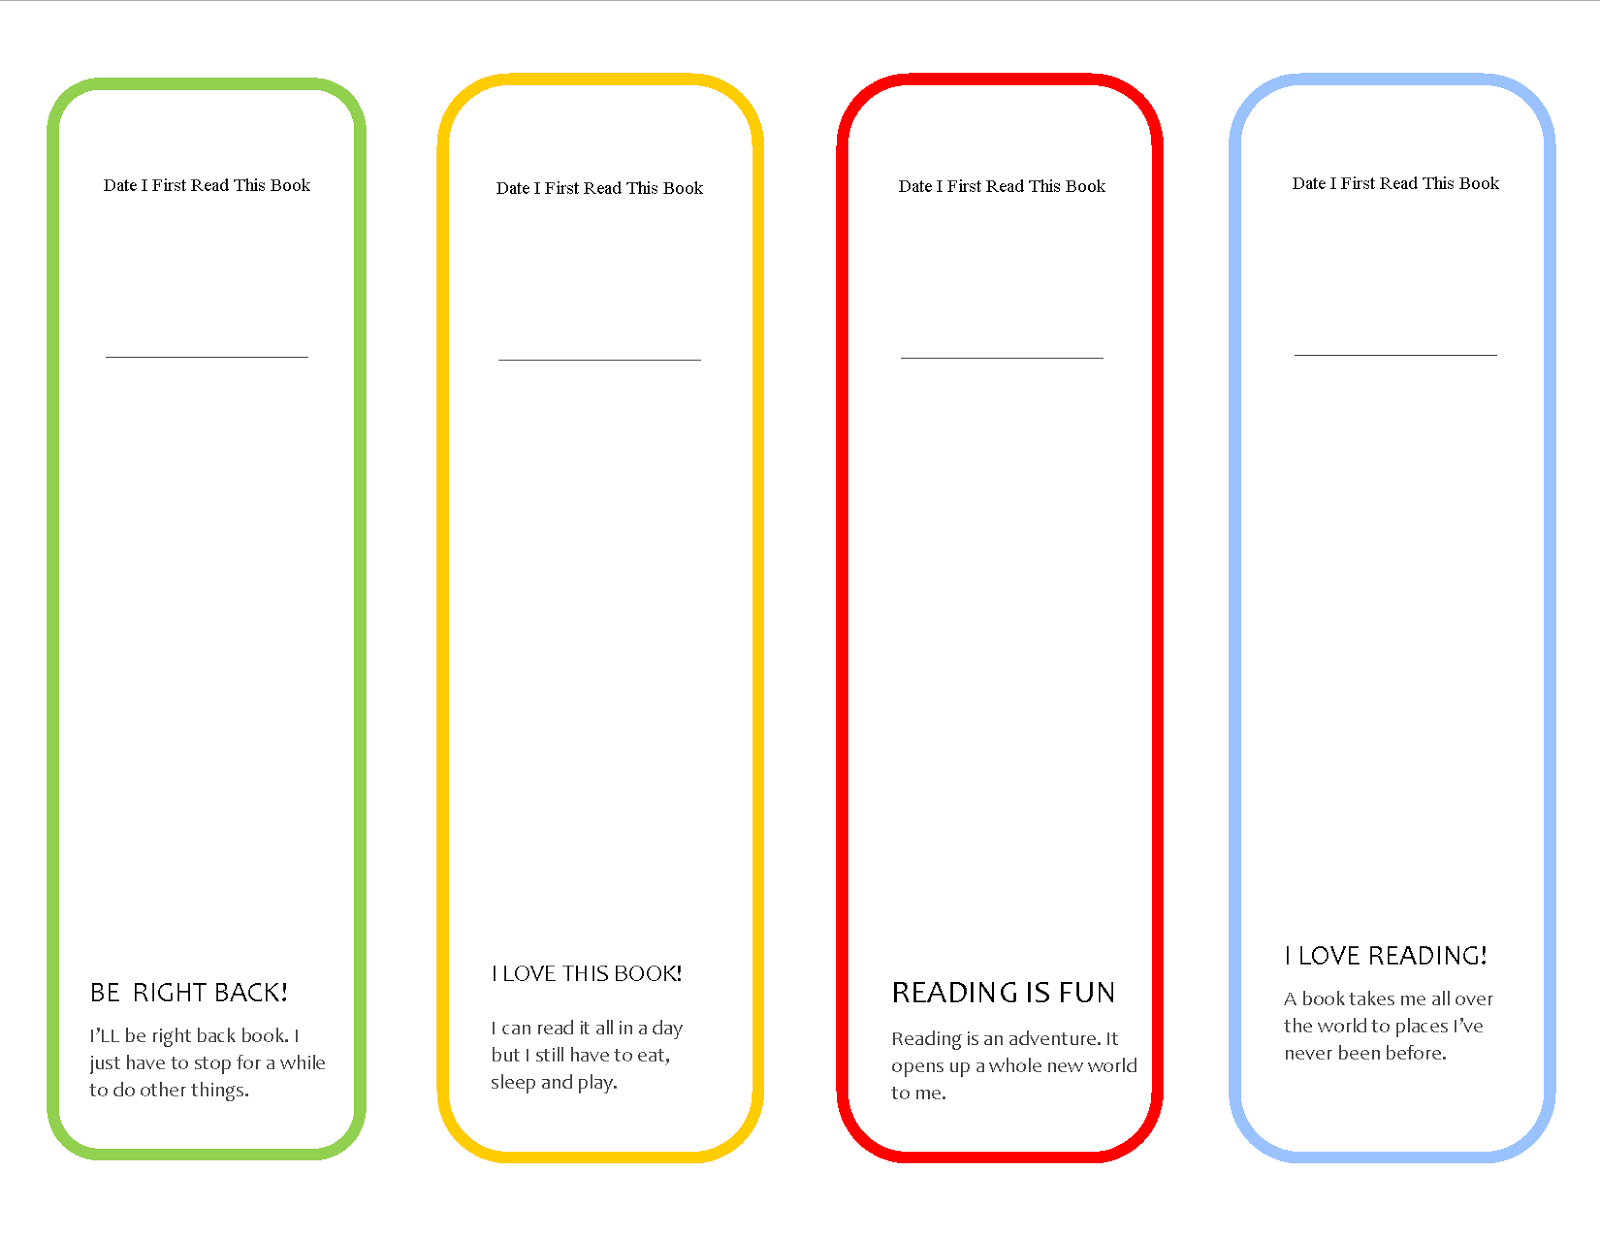 Handy image with regard to bookmarks printable